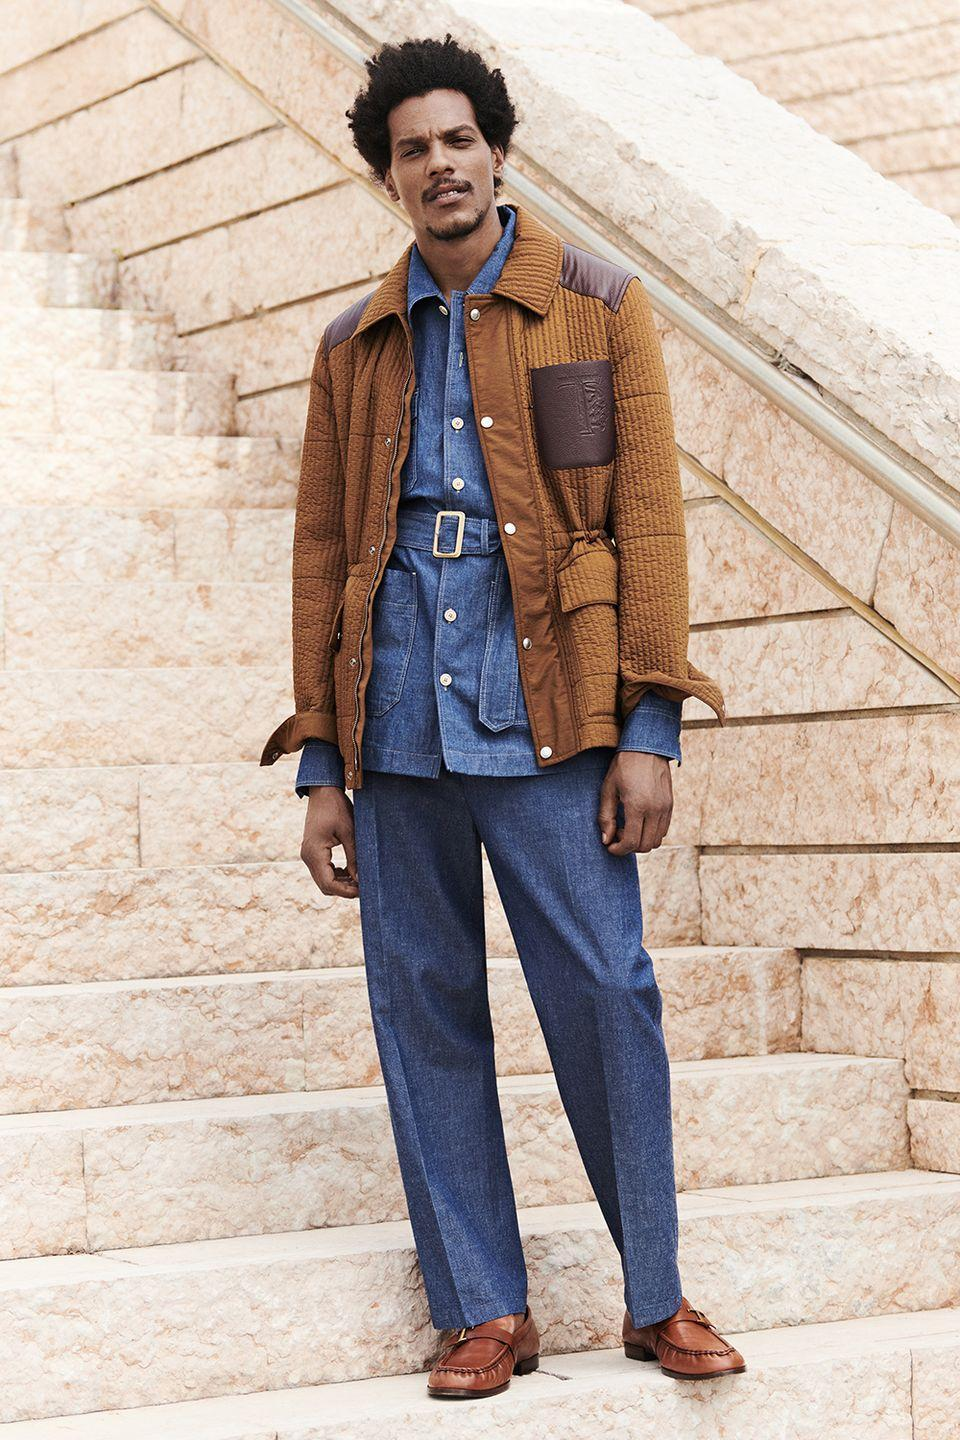 <p>For his latest menswear collection for Tod's, creative director Walter Chiapponi took inspiration from the very colour palette of Italy, which is a shrewd move. Lots of dusty, sun kissed shades and summer-beaten textures, and all realised in a collection that oscillates between sportswear, classic menswear and Riviera-wear. The highlight is this quilted jacket (with gatherable flanks), but the belted denim safari shirt underneath isn't too shabby, either. </p><p><strong>CT</strong></p>